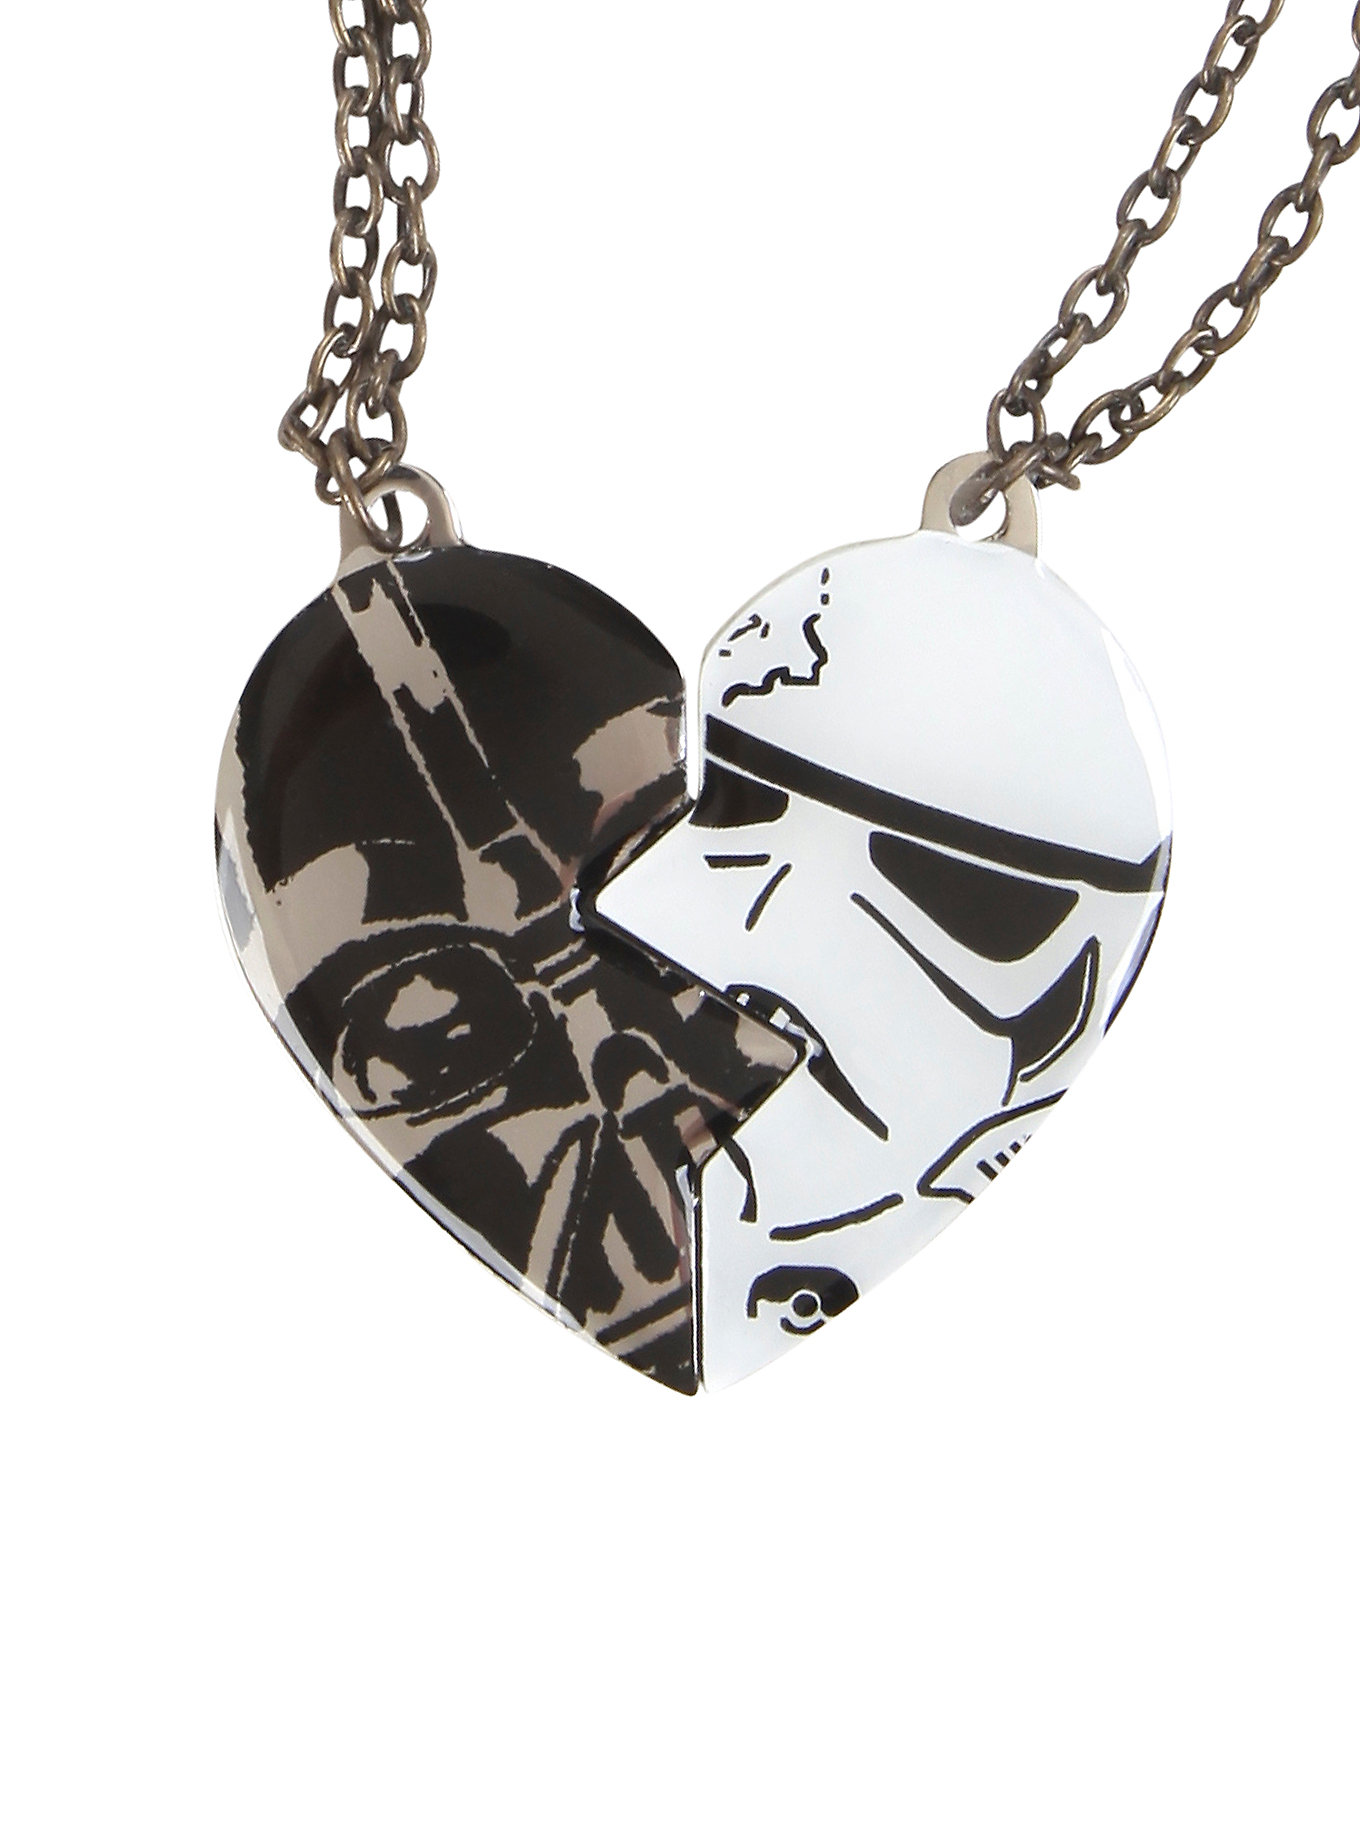 New Jewelry At Hot Topic The Kessel Runway